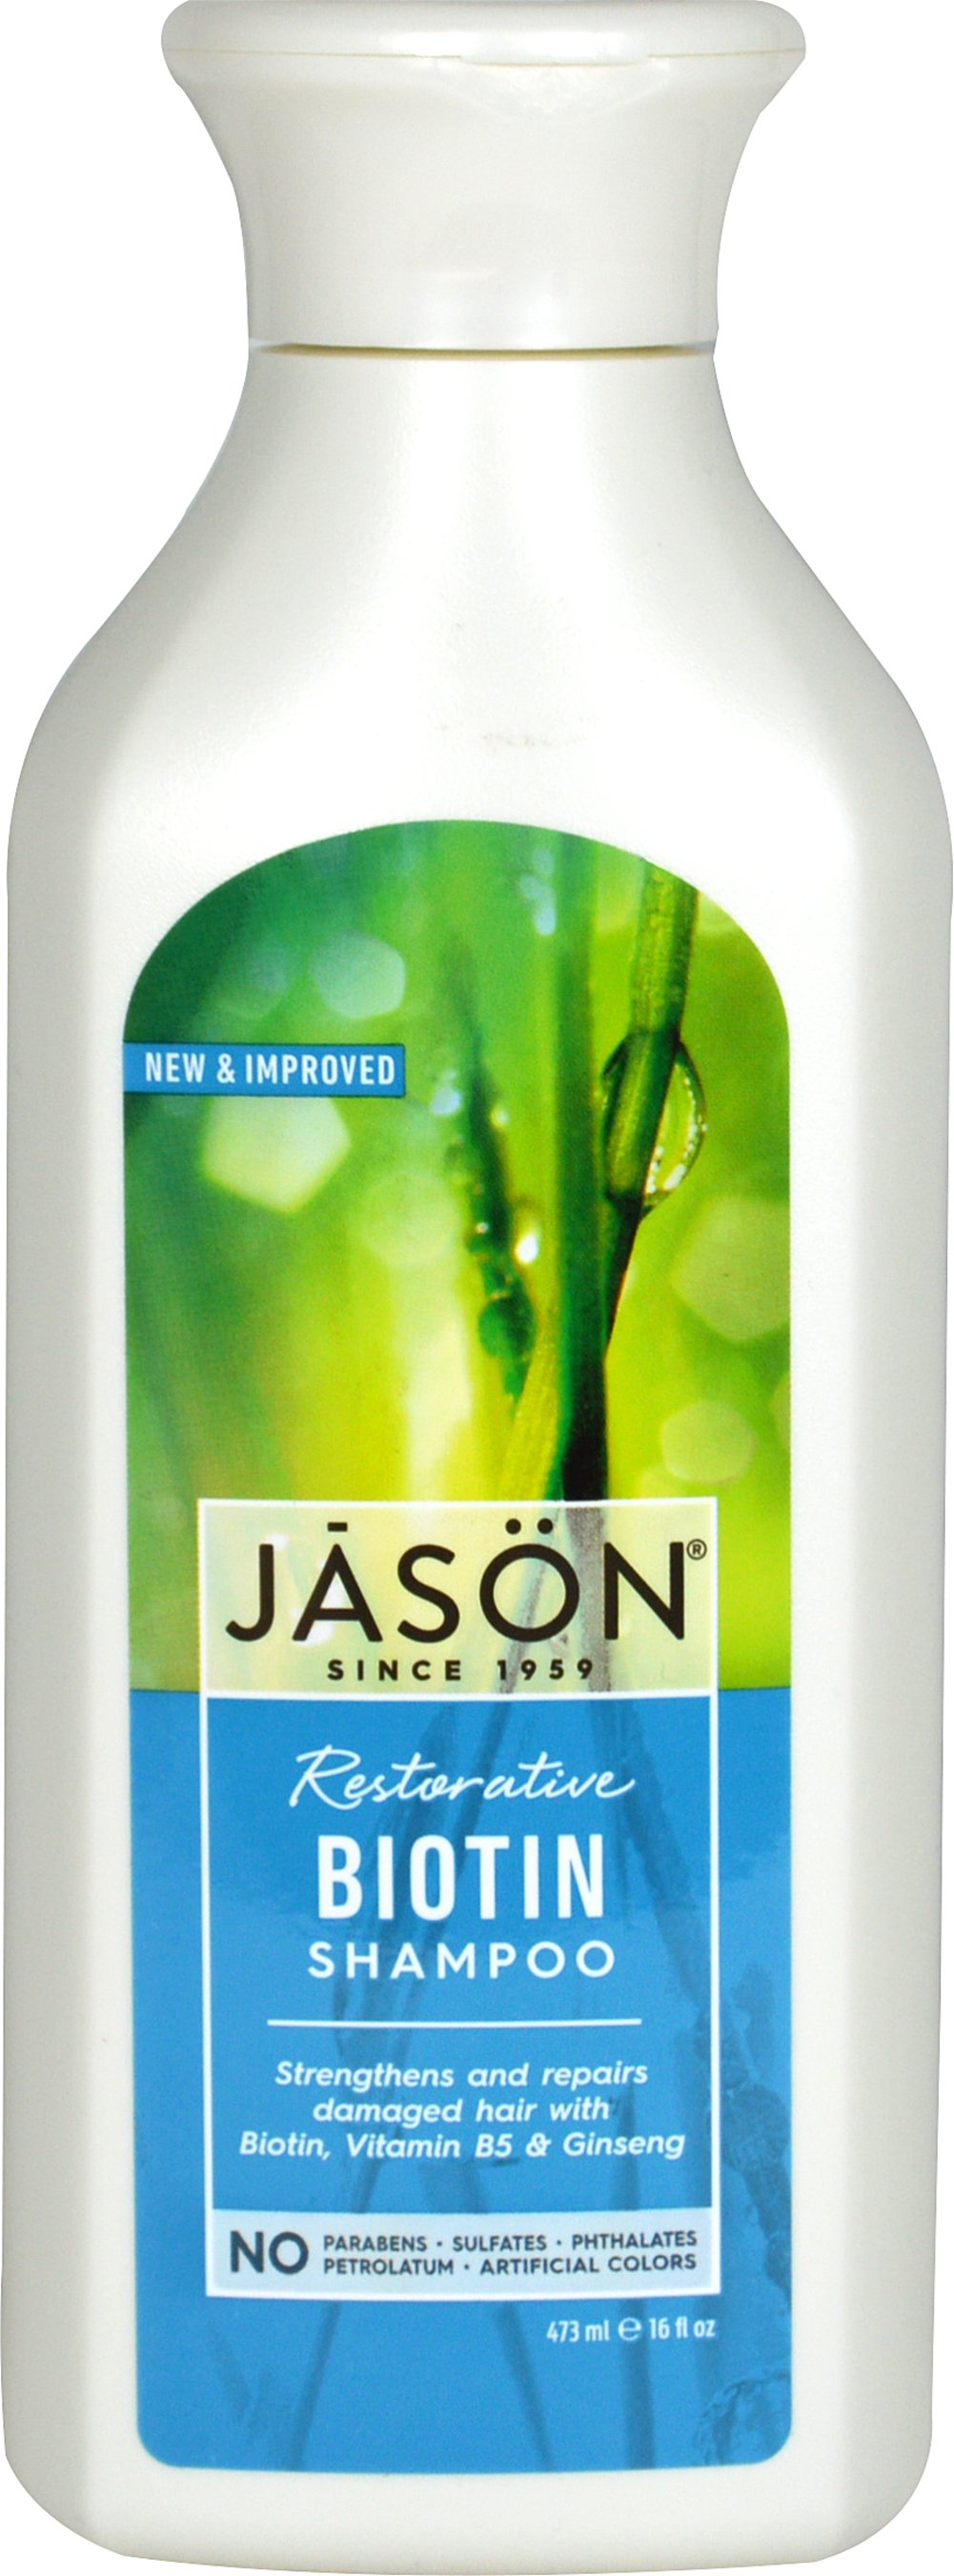 Jason® Natural Biotin Hair Restorative Shampoo  16 oz Shampoo  $8.39